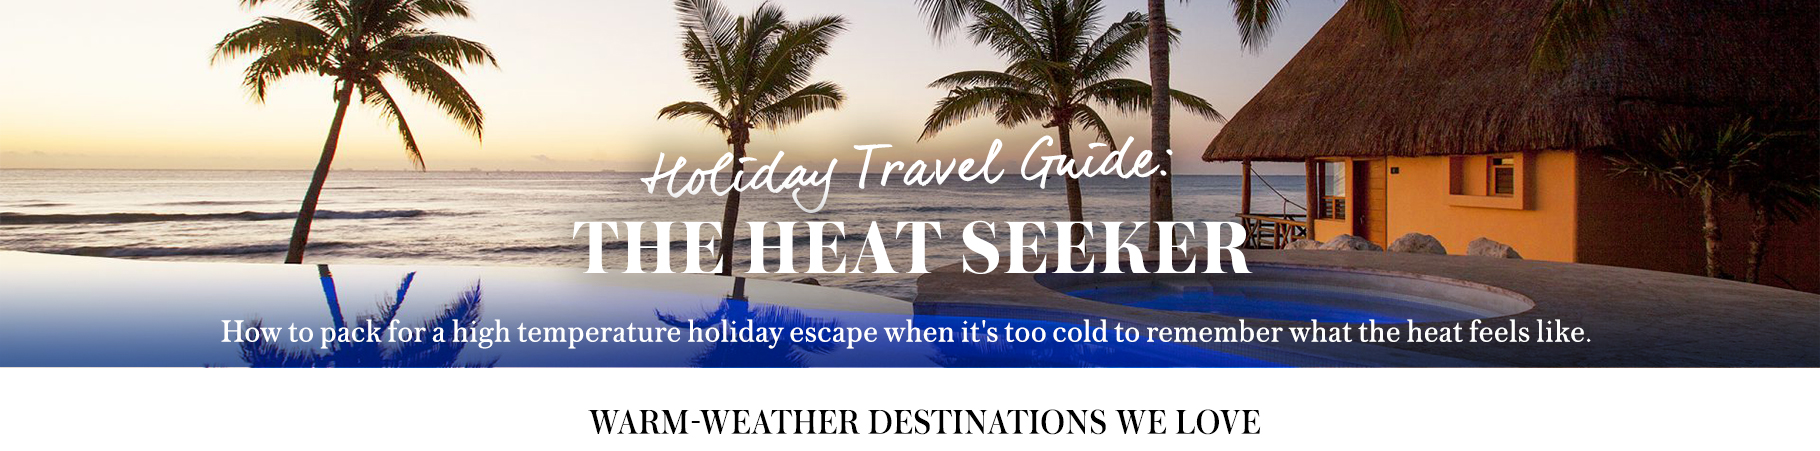 Holiday Travel Guide The Heat Seeker The RealReal Shop - 12 best warm weather escapes for the holidays